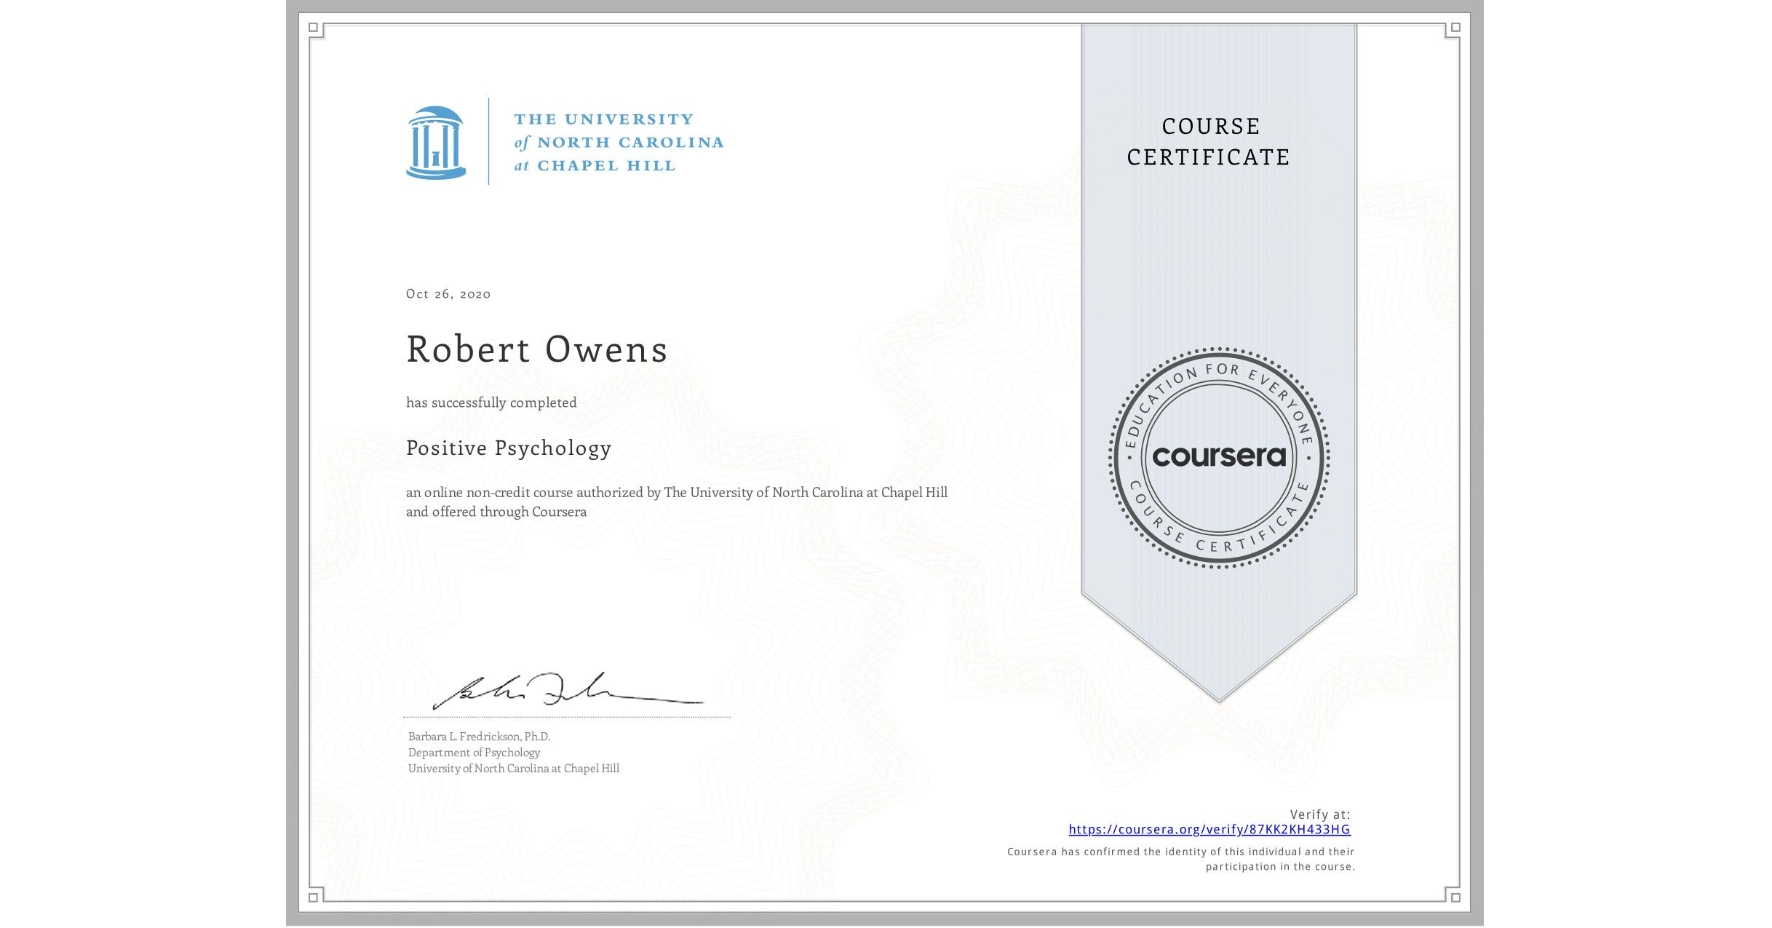 View certificate for Robert Owens, Positive Psychology , an online non-credit course authorized by The University of North Carolina at Chapel Hill and offered through Coursera